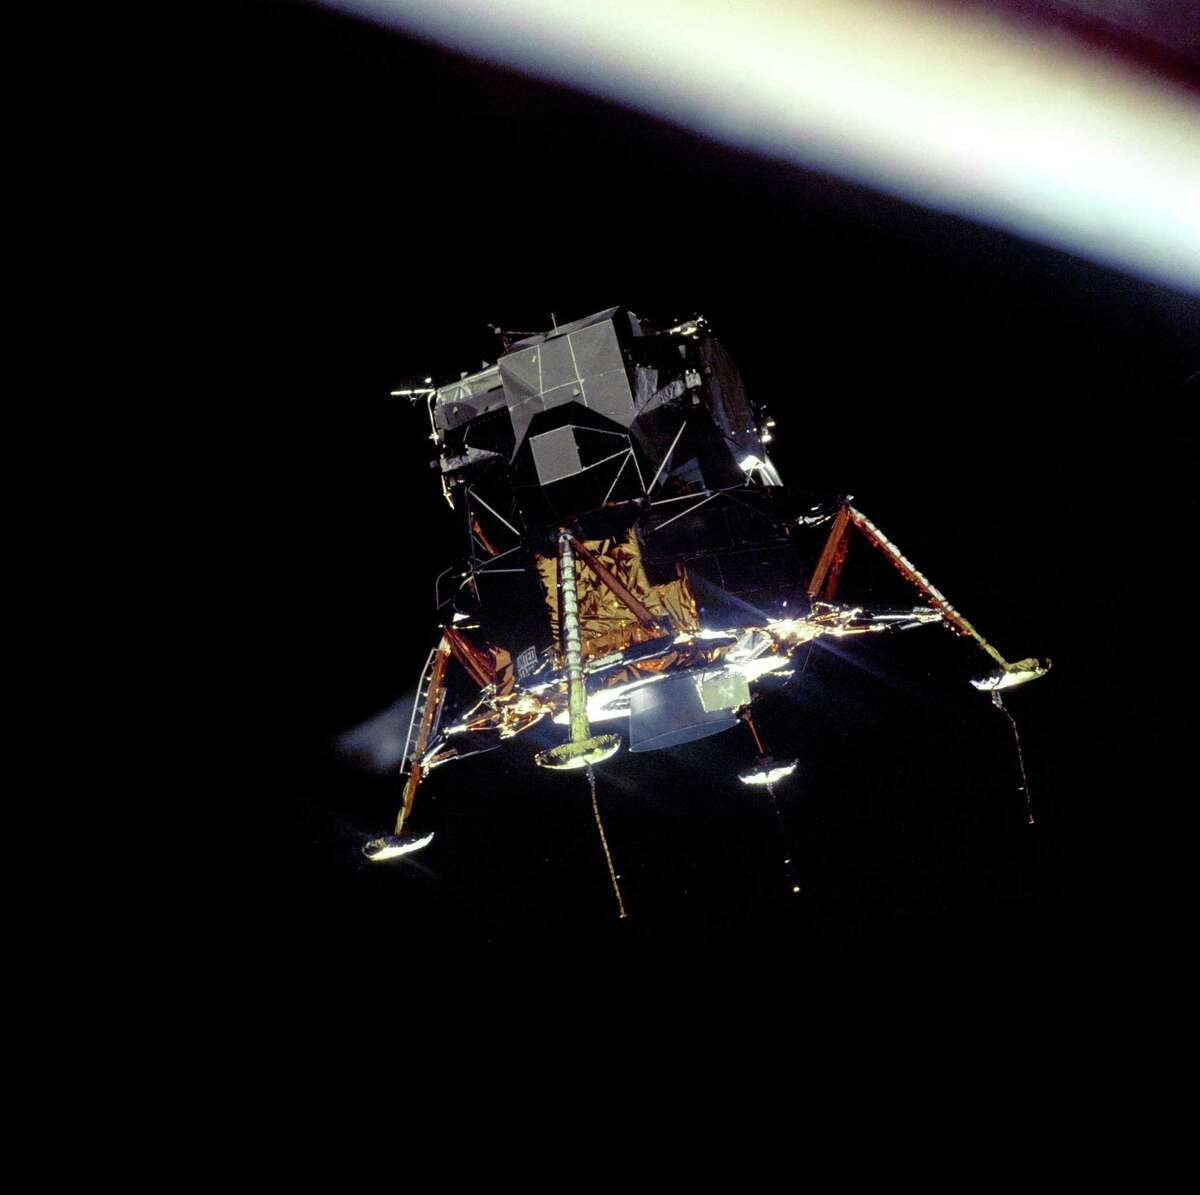 """The Apollo 11 Lunar Module Eagle, in a landing configuration, was photographed in lunar orbit from the Command and Service Module Columbia. """"The Eagle has landed"""" was spoken when the module landed on the lunar surface."""